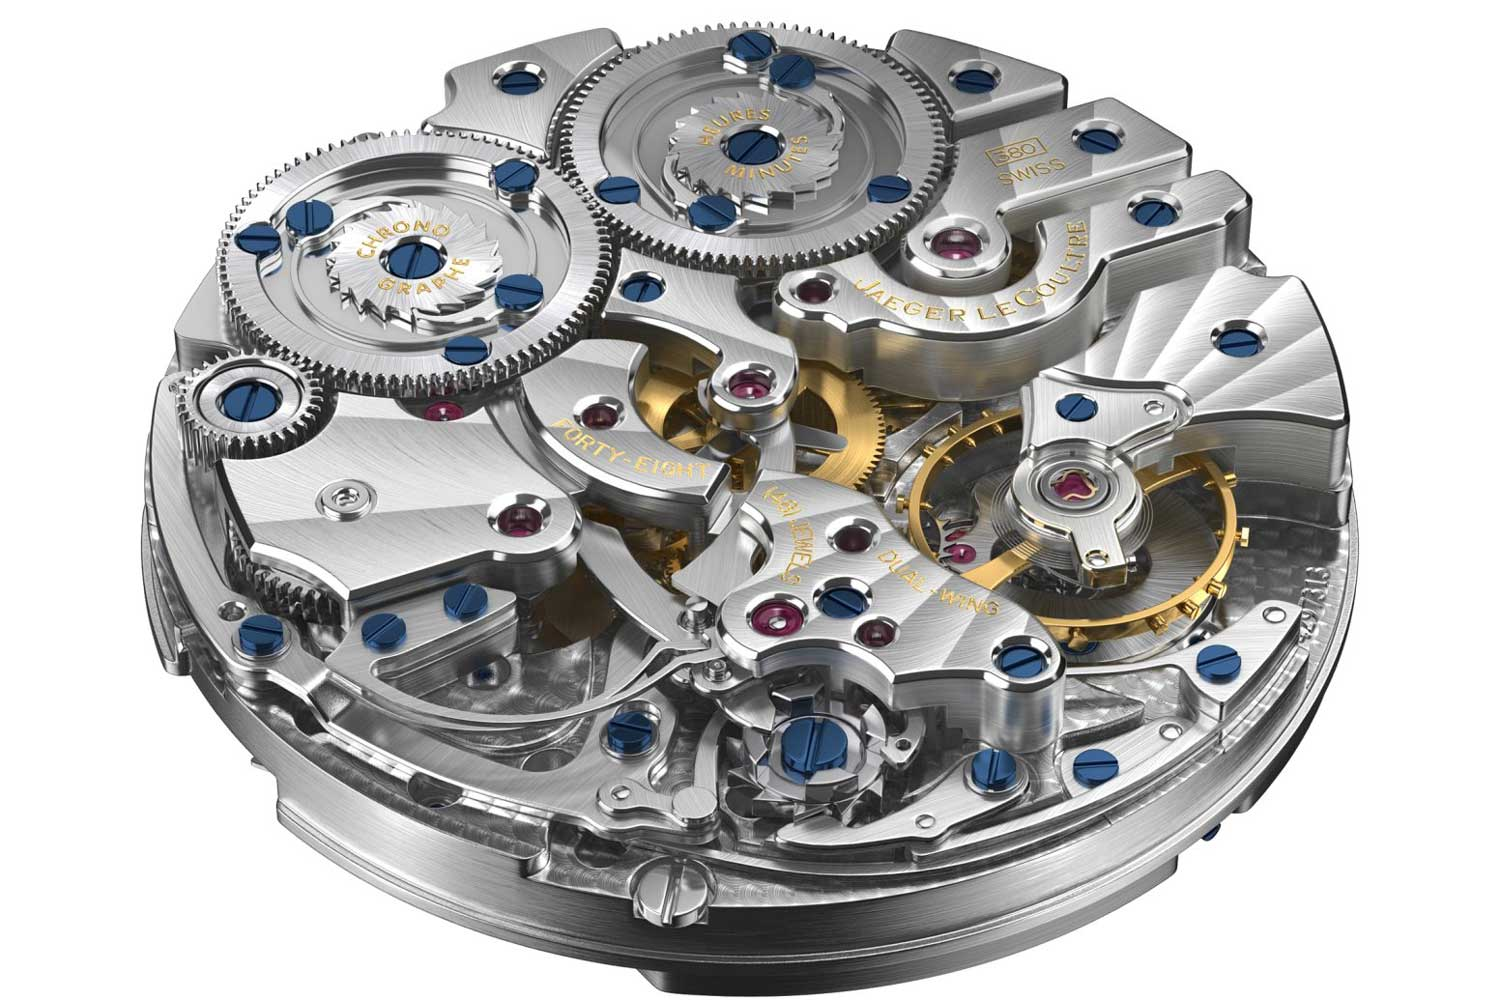 The Duomètre à Chronographe caliber 380 with no coupling system. Instead, the gear train drives the pinion of the escape wheel while the chronograph gear train engages the escape wheel directly